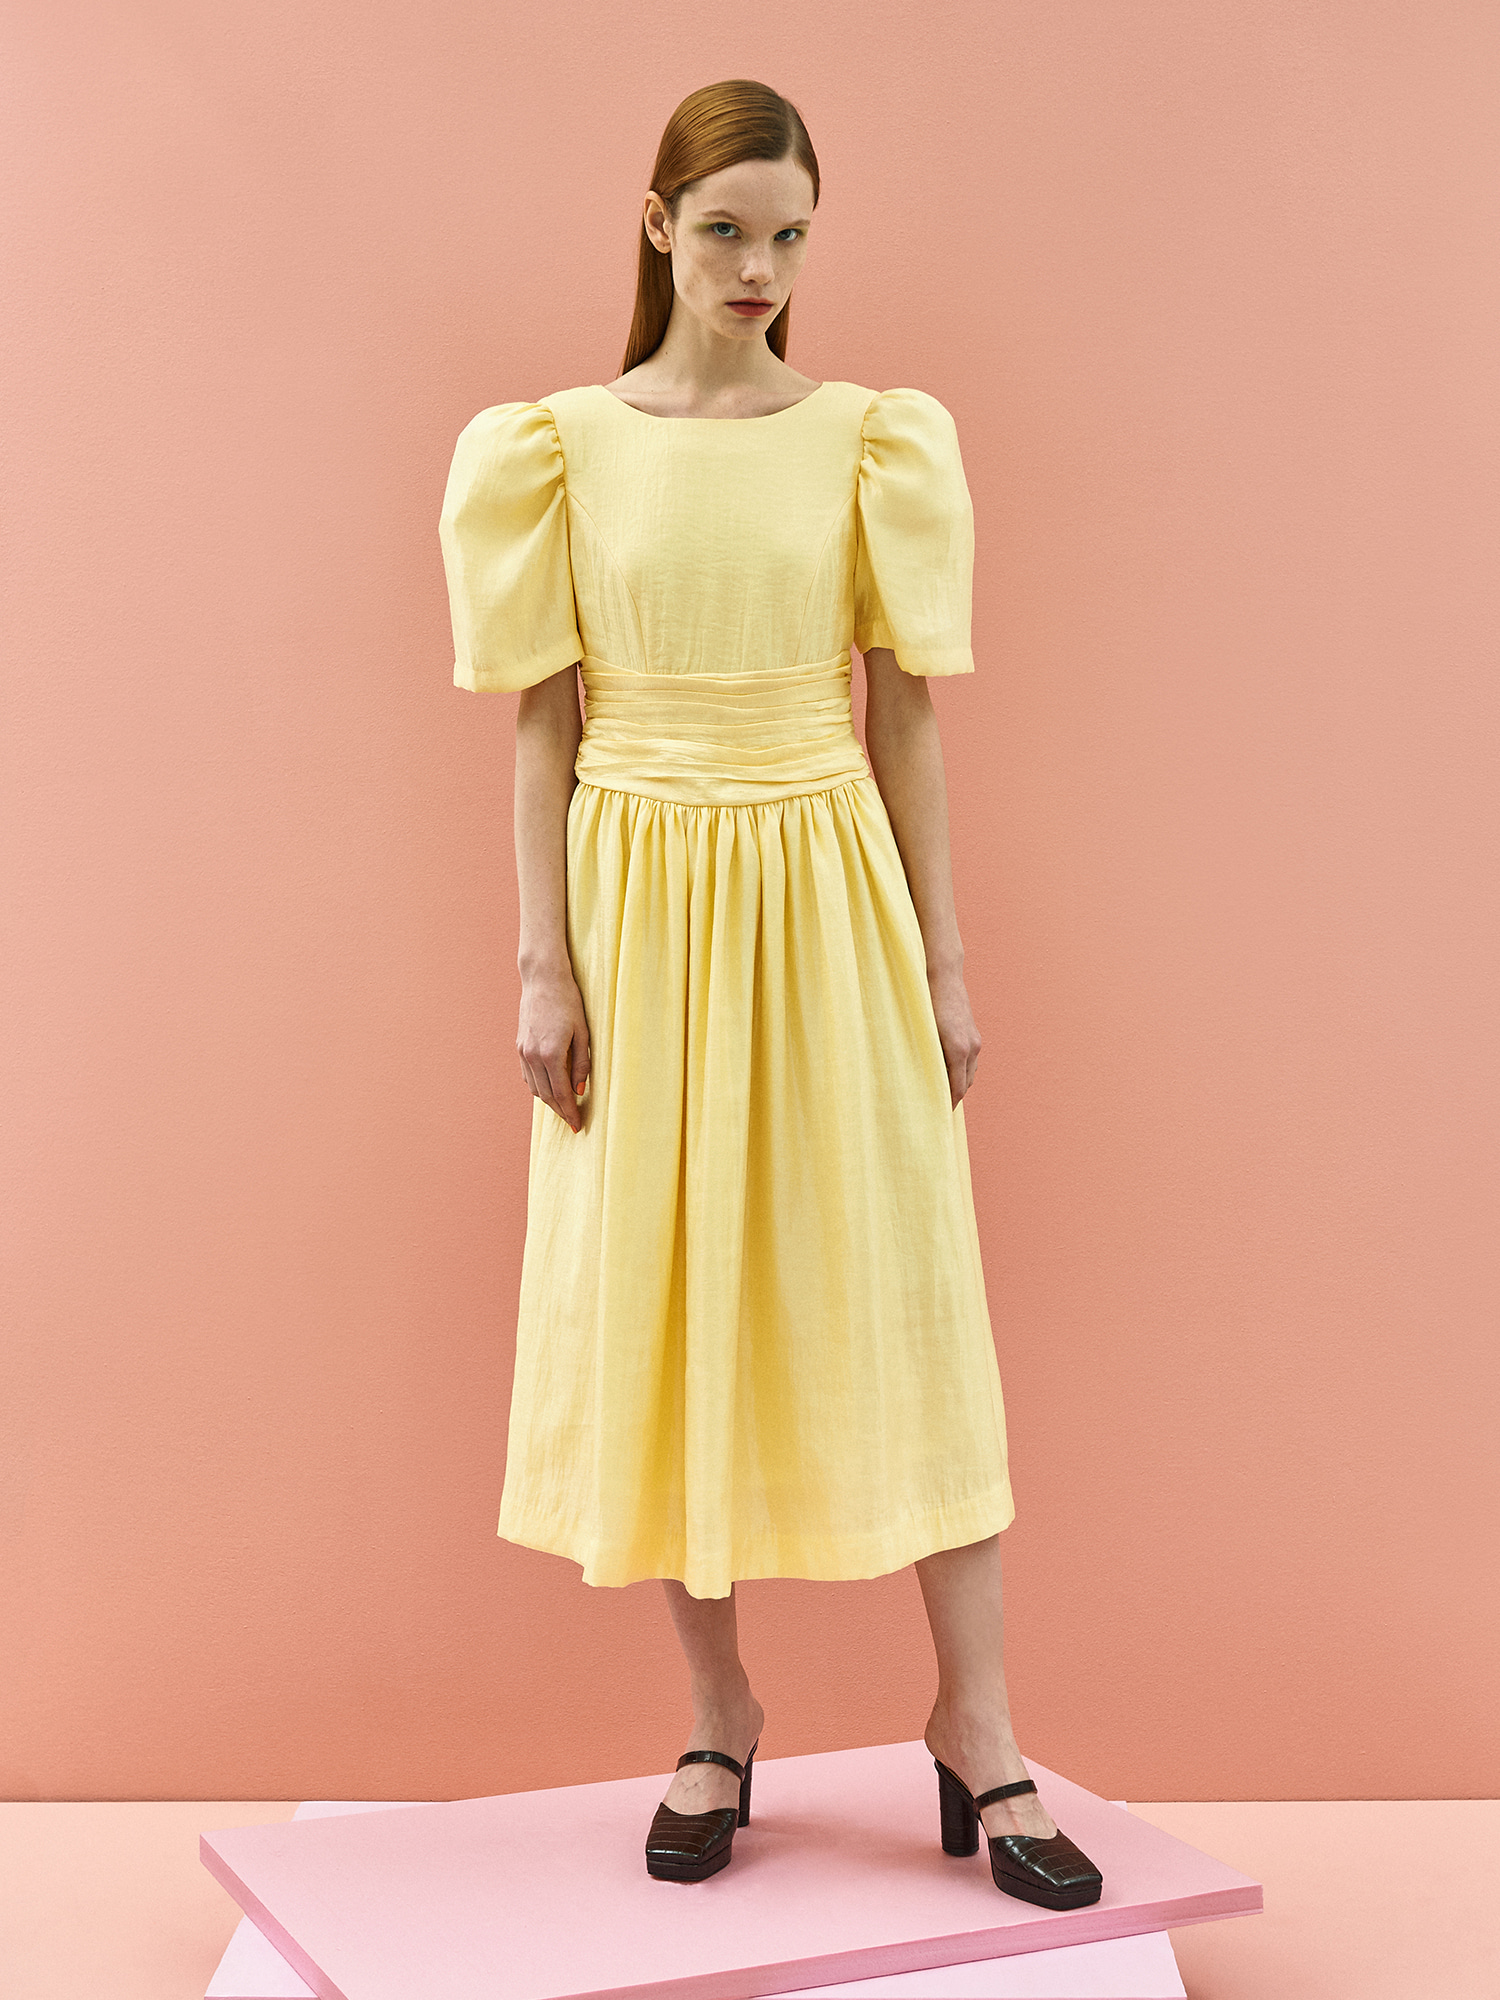 [미드세일 40%할인]Retro Ribbon Dress in Lemon